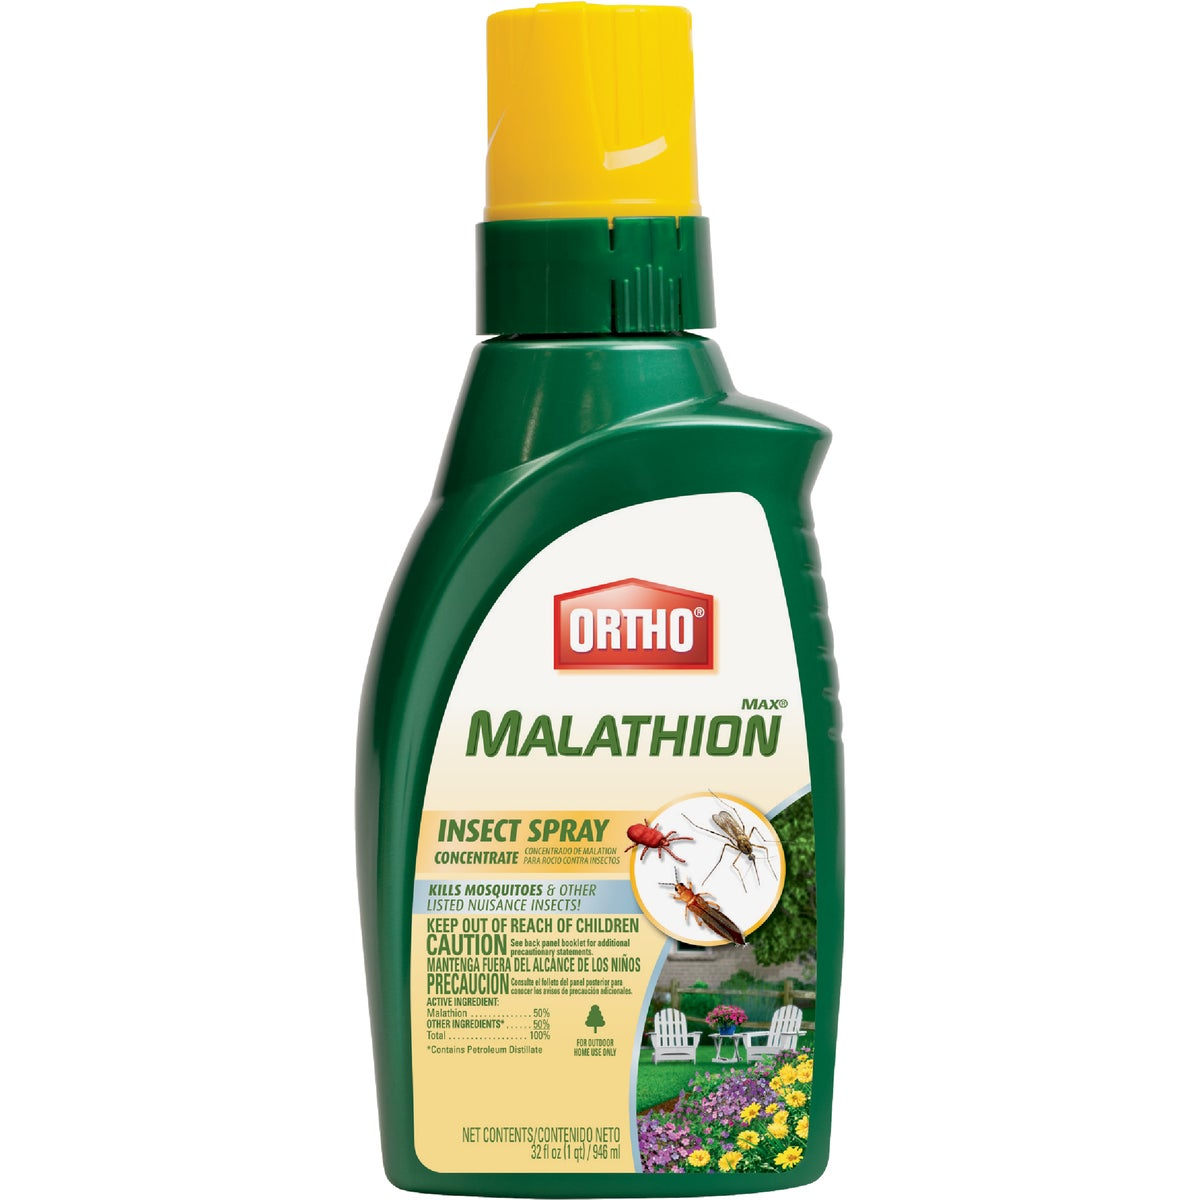 32OZ CONC MALATHION - 0166610 by Scotts Company